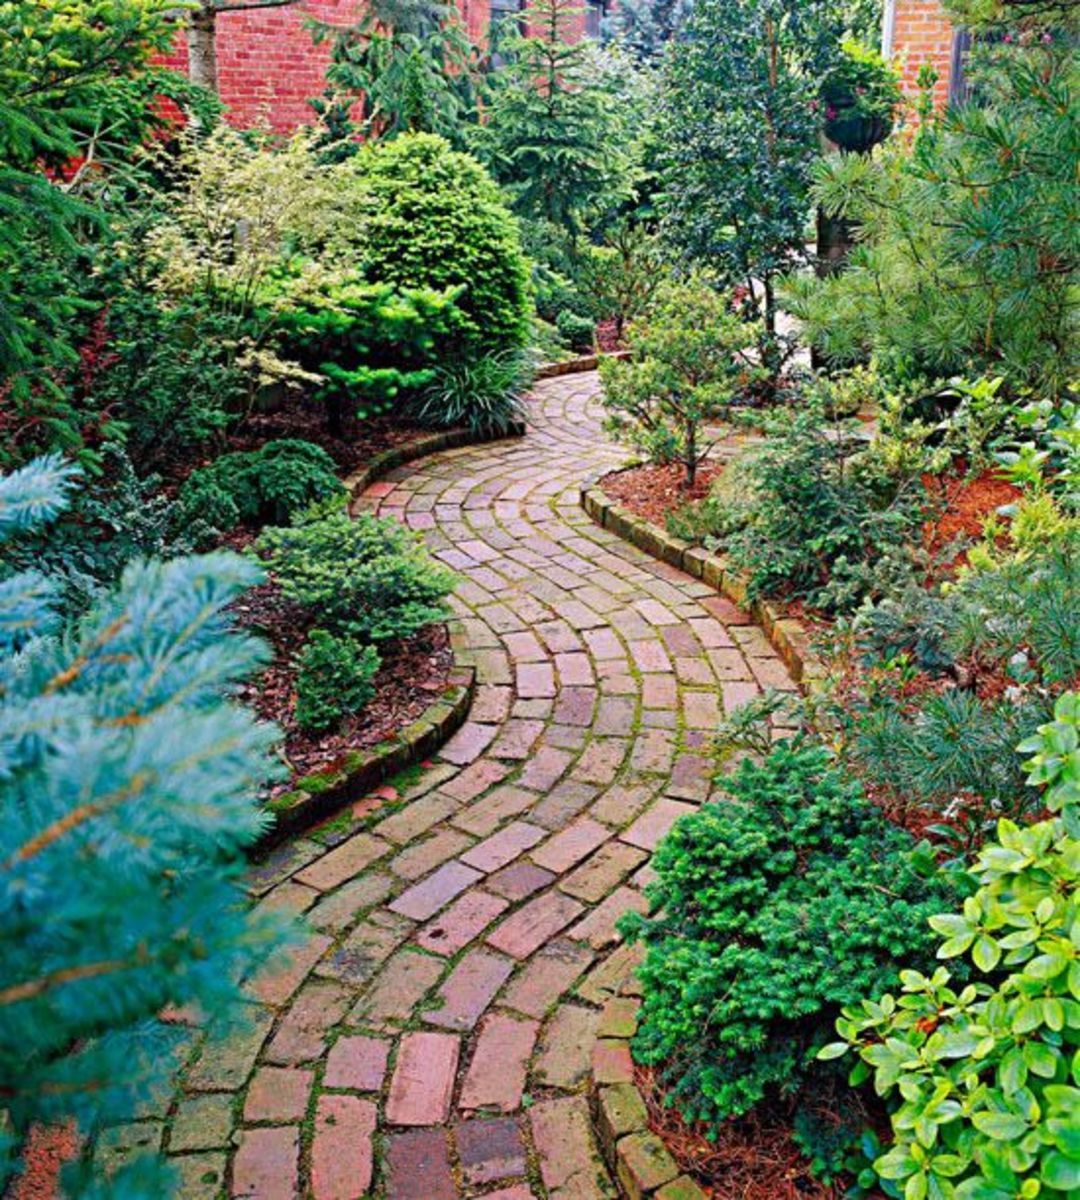 Brick pathways can help make your garden look organized and manicured. The red brick is perfect for an Aries style garden.